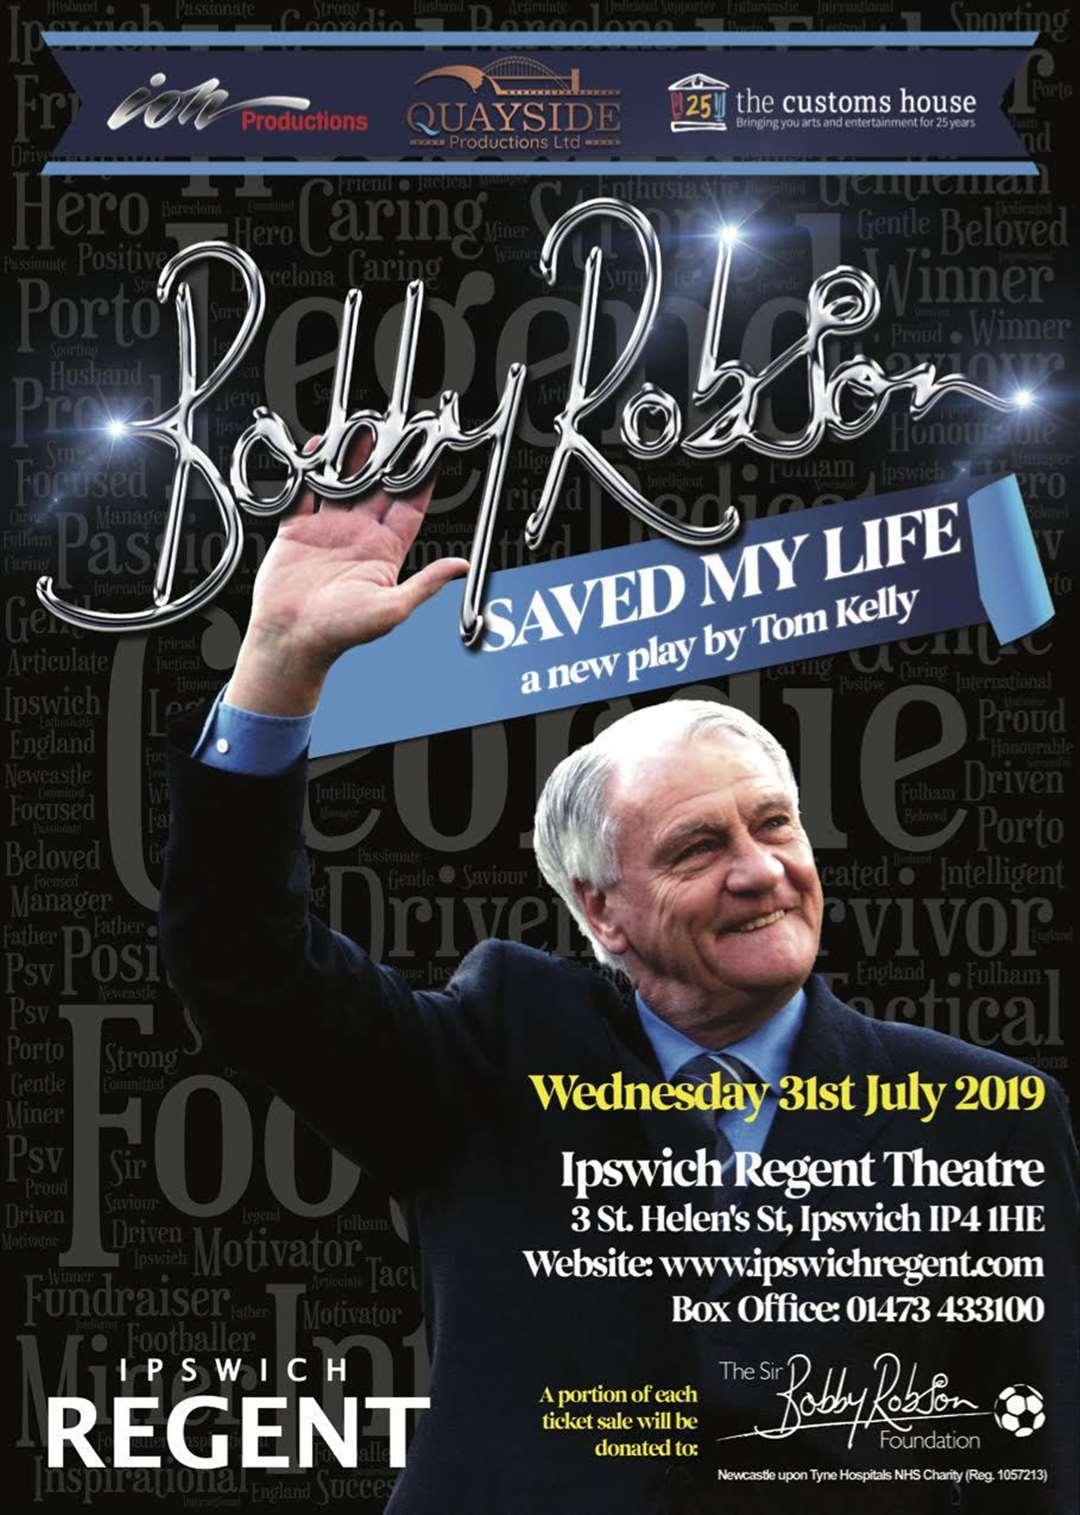 Sir Bobby Robson Saved My Life is coming to Ipswich's Regent Theatre on the 10th anniversary of his death next month (11873420)